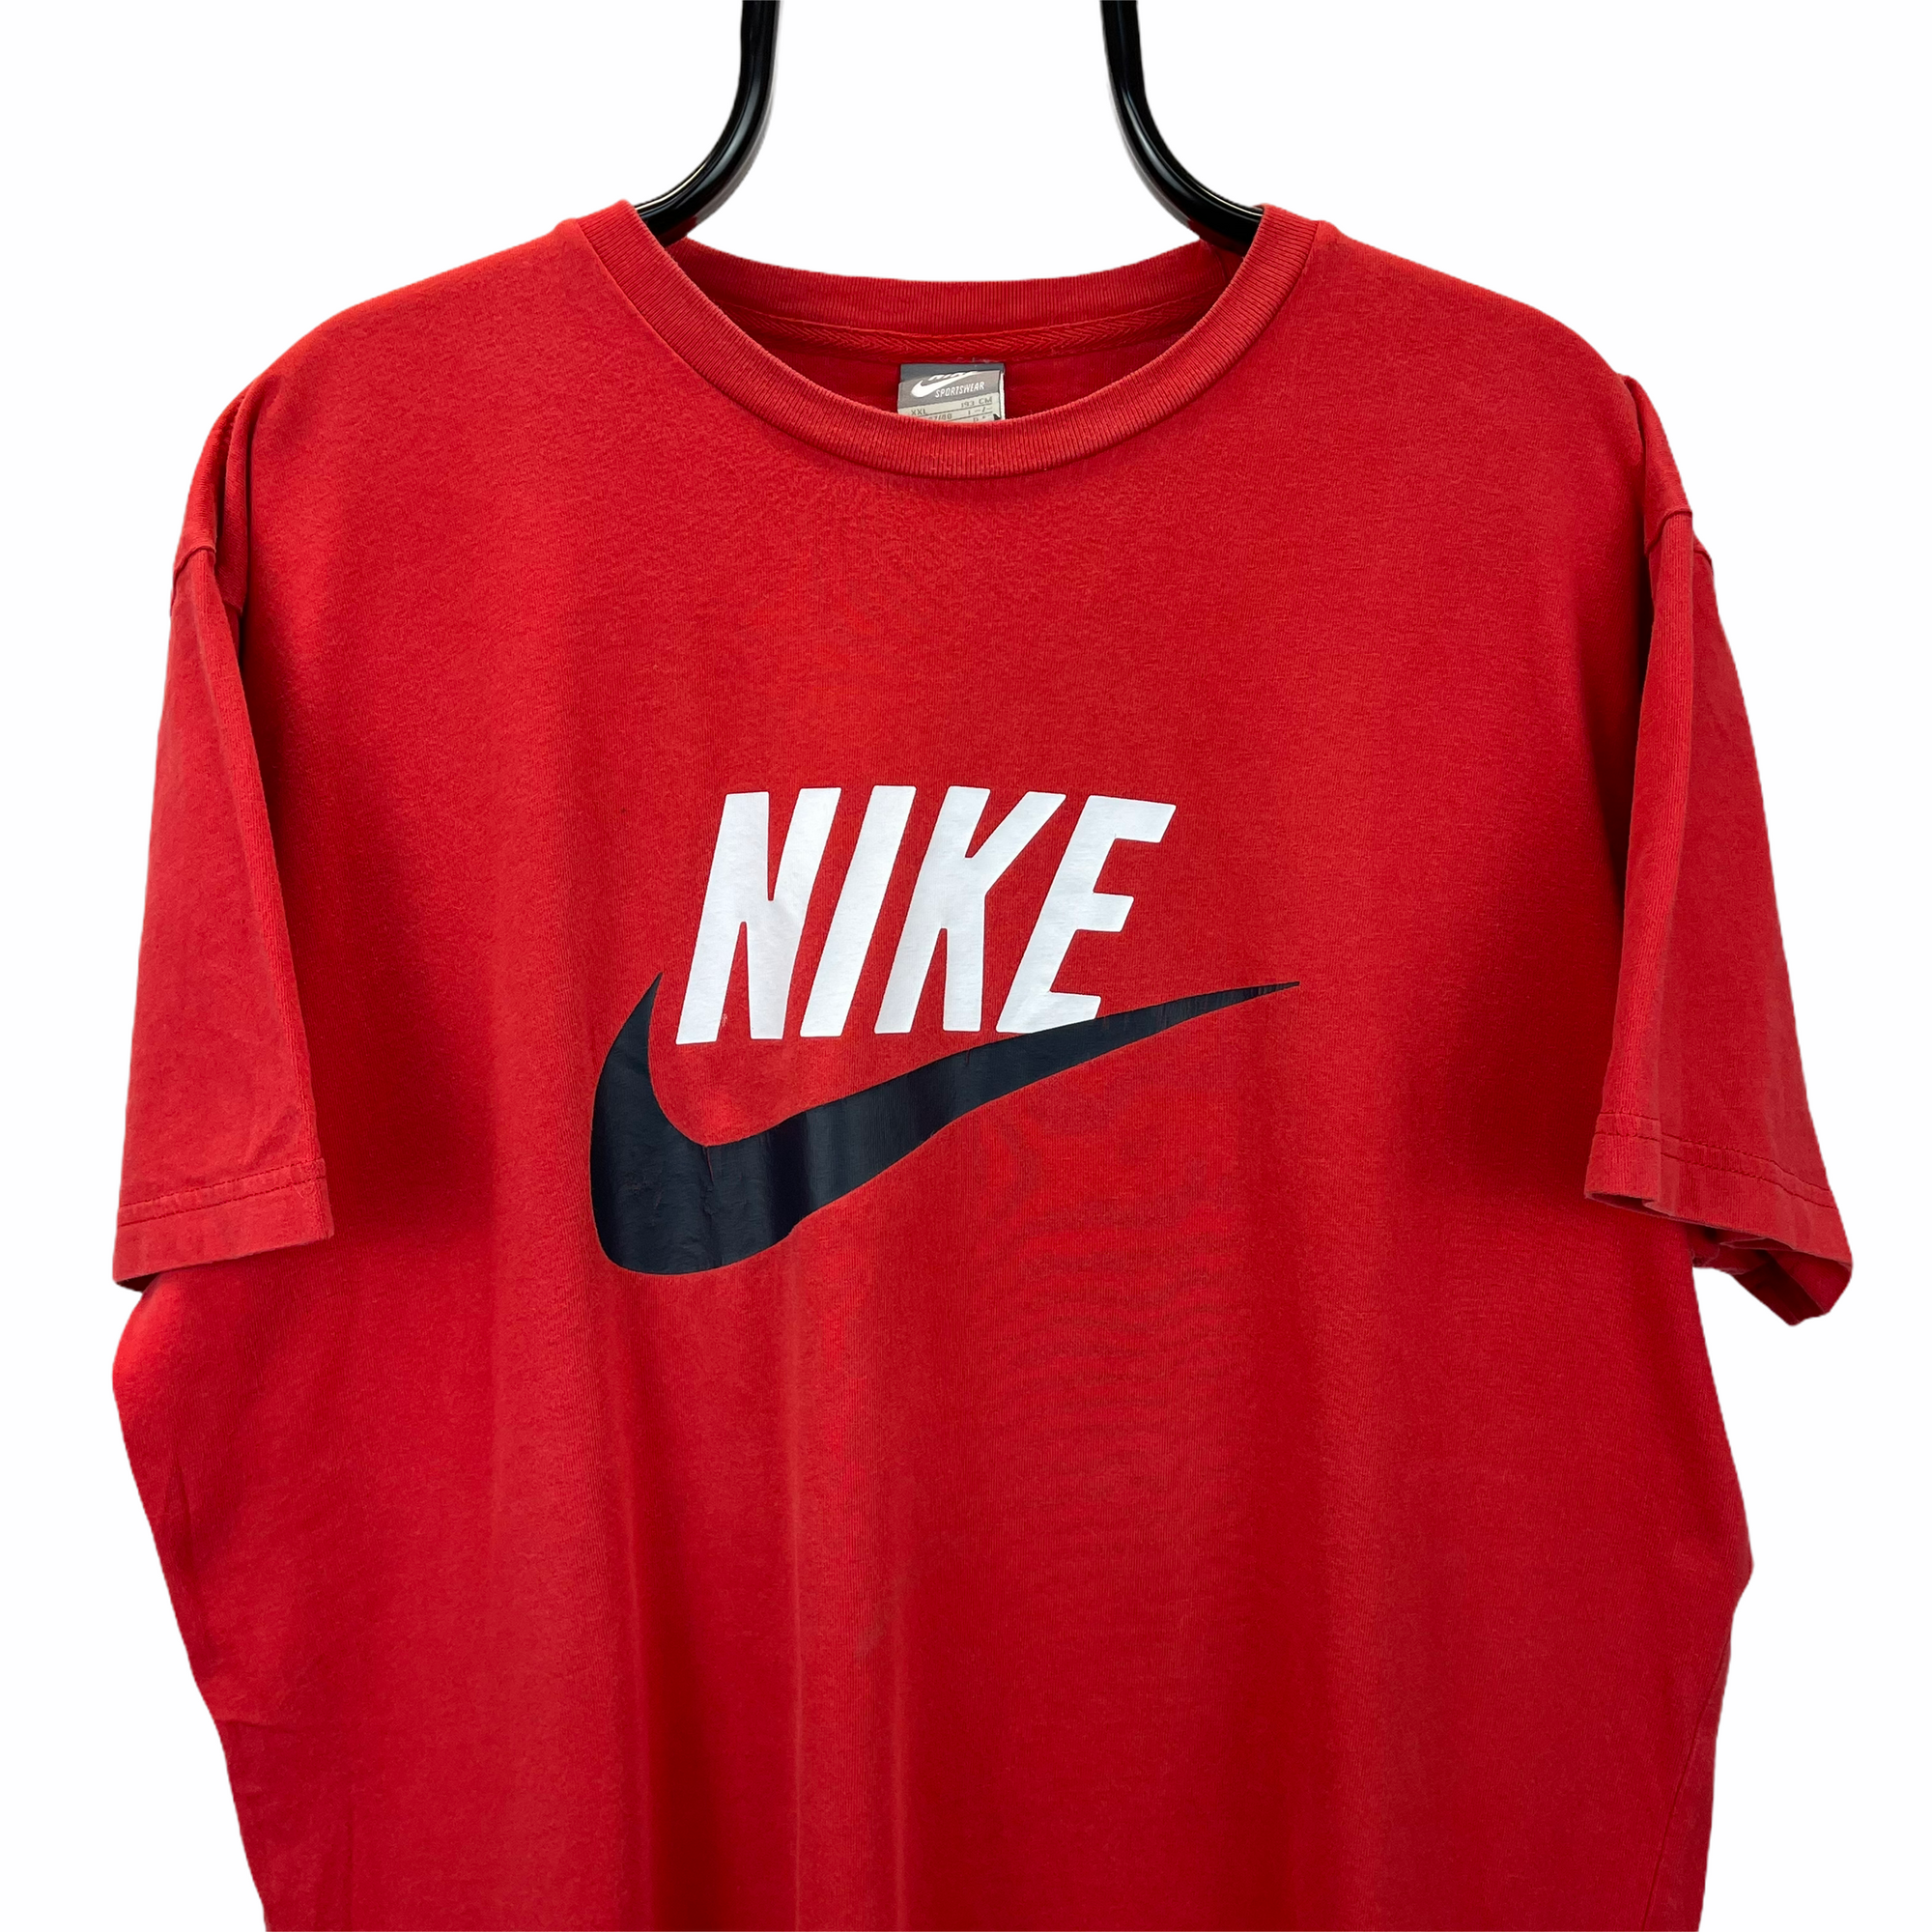 Vintage Nike Spellout Tee in Red - Men's XL/Women's XXL